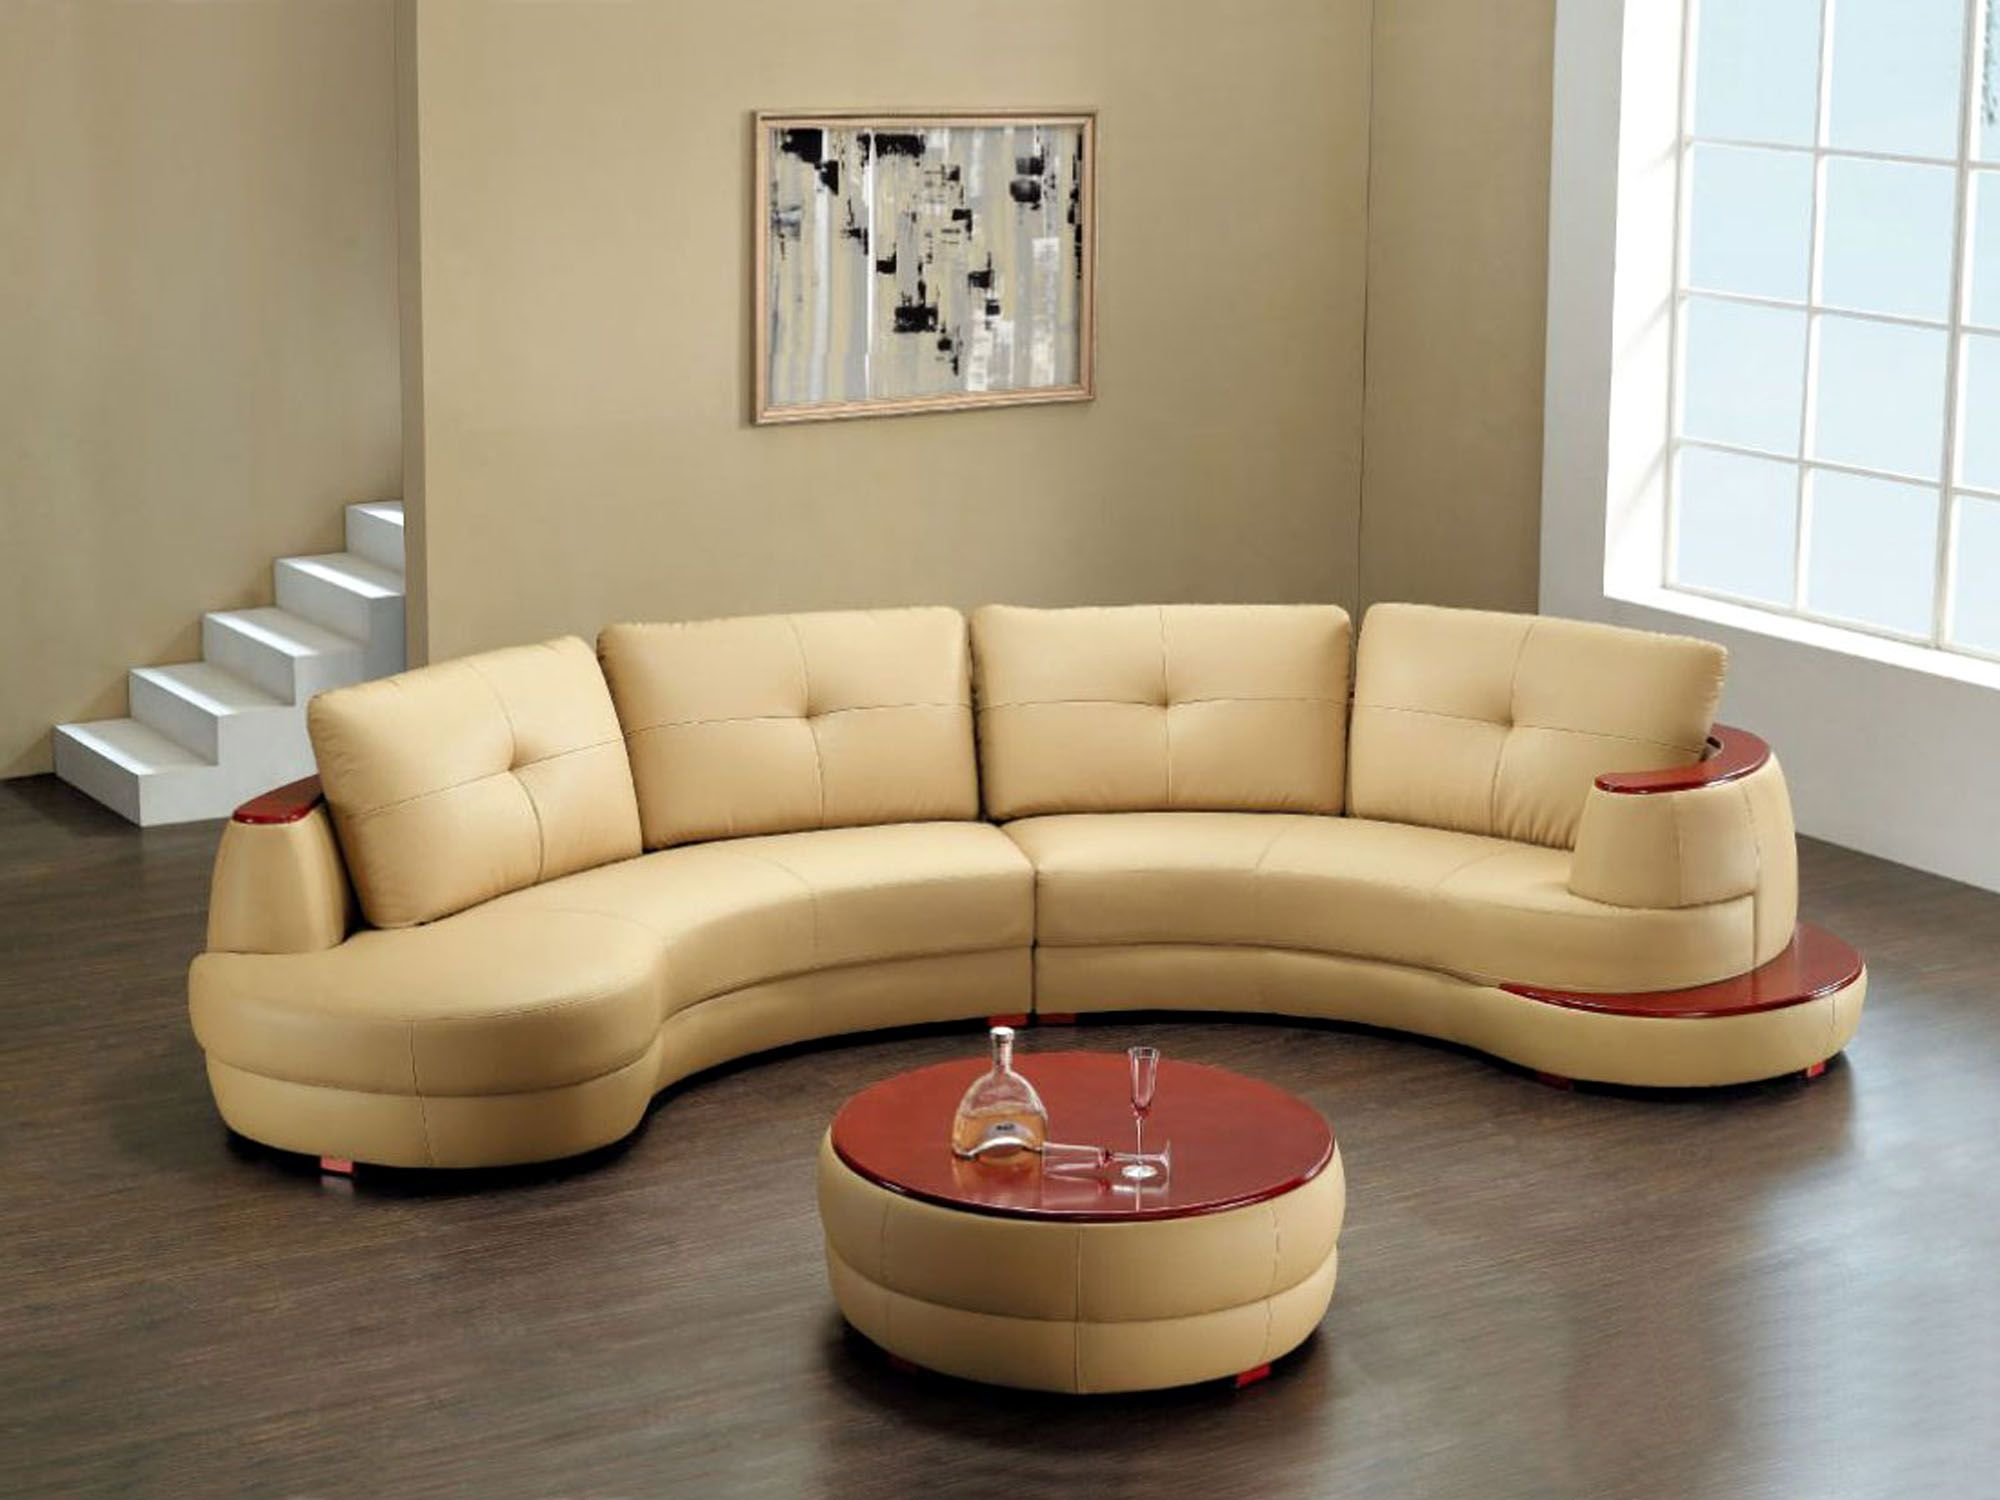 with latest sectional sofa home buy and chaise curved steps decor design to